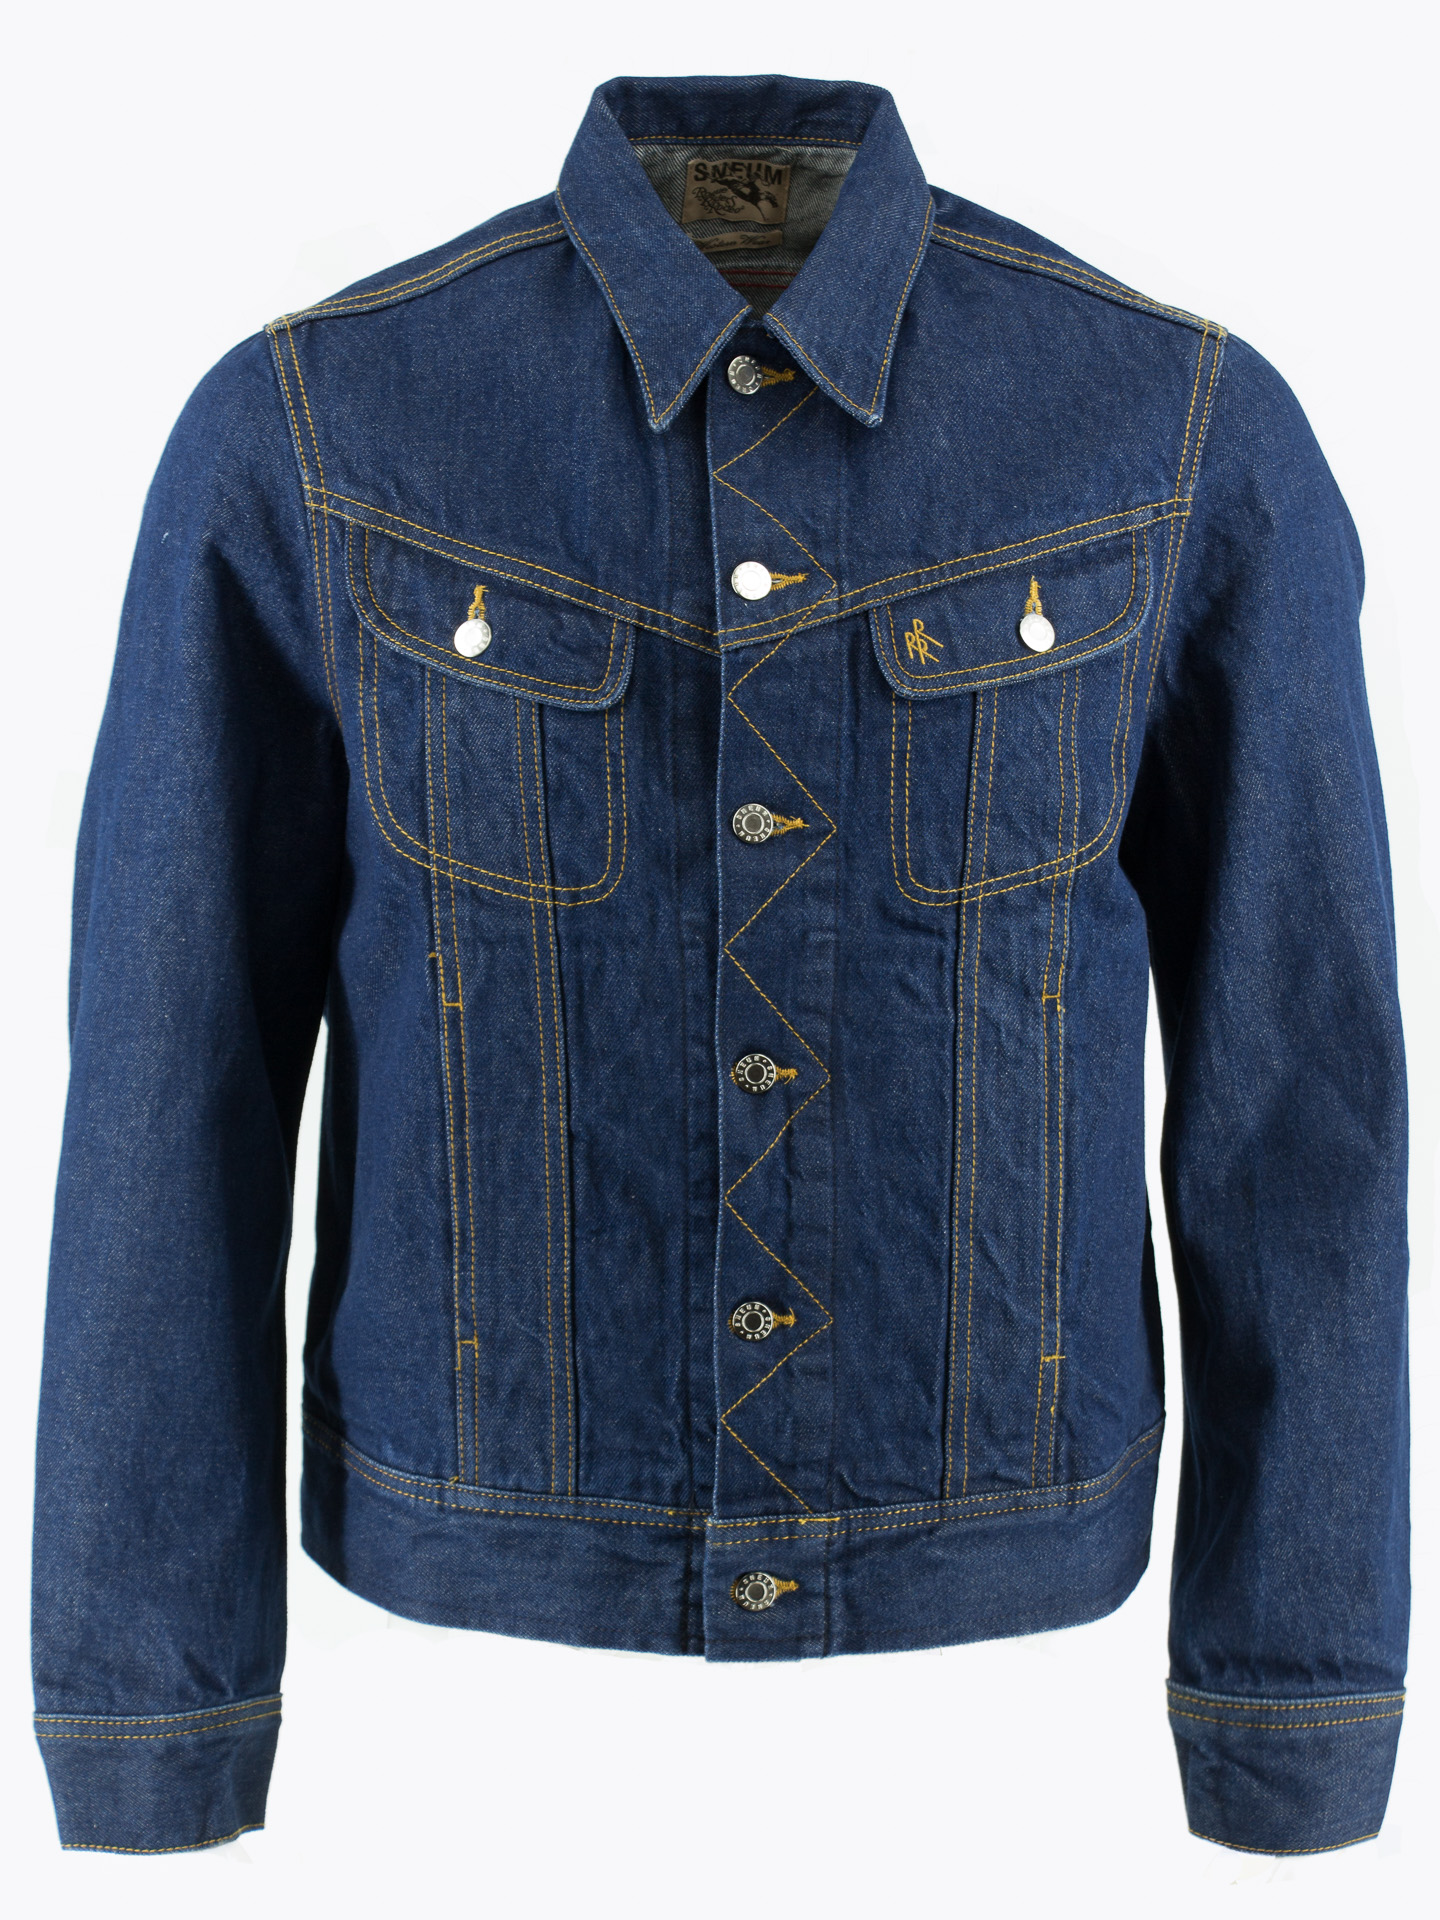 Rider denim jacket Cone denim